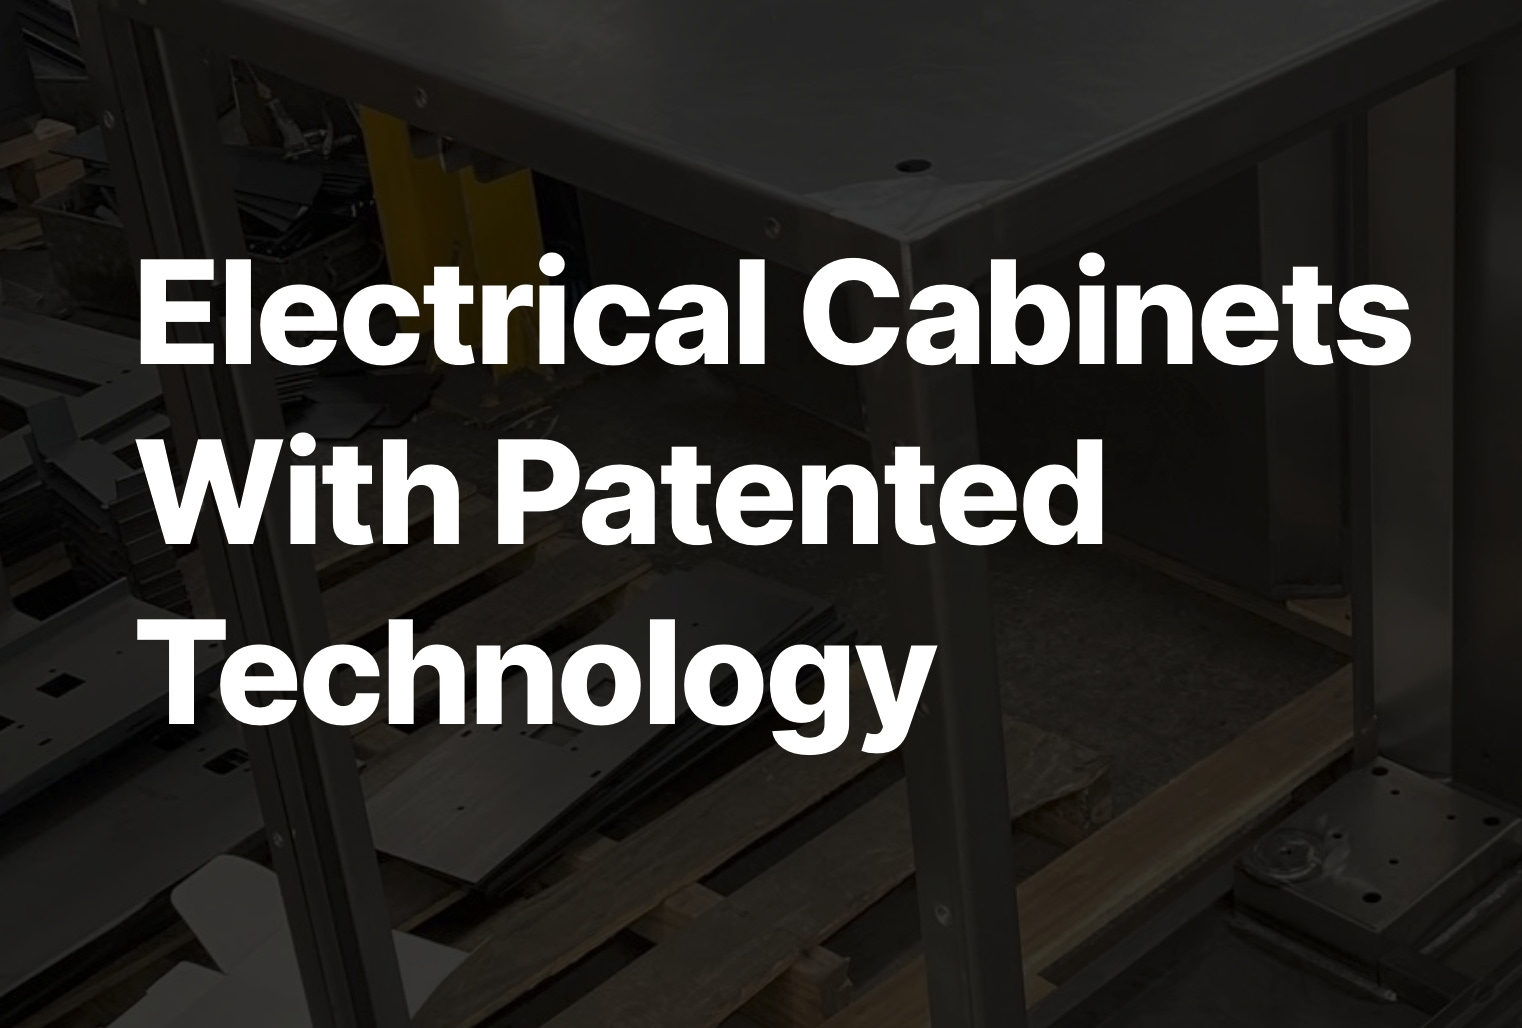 Elecrtical Cabinets with patented technology Laser Expertise